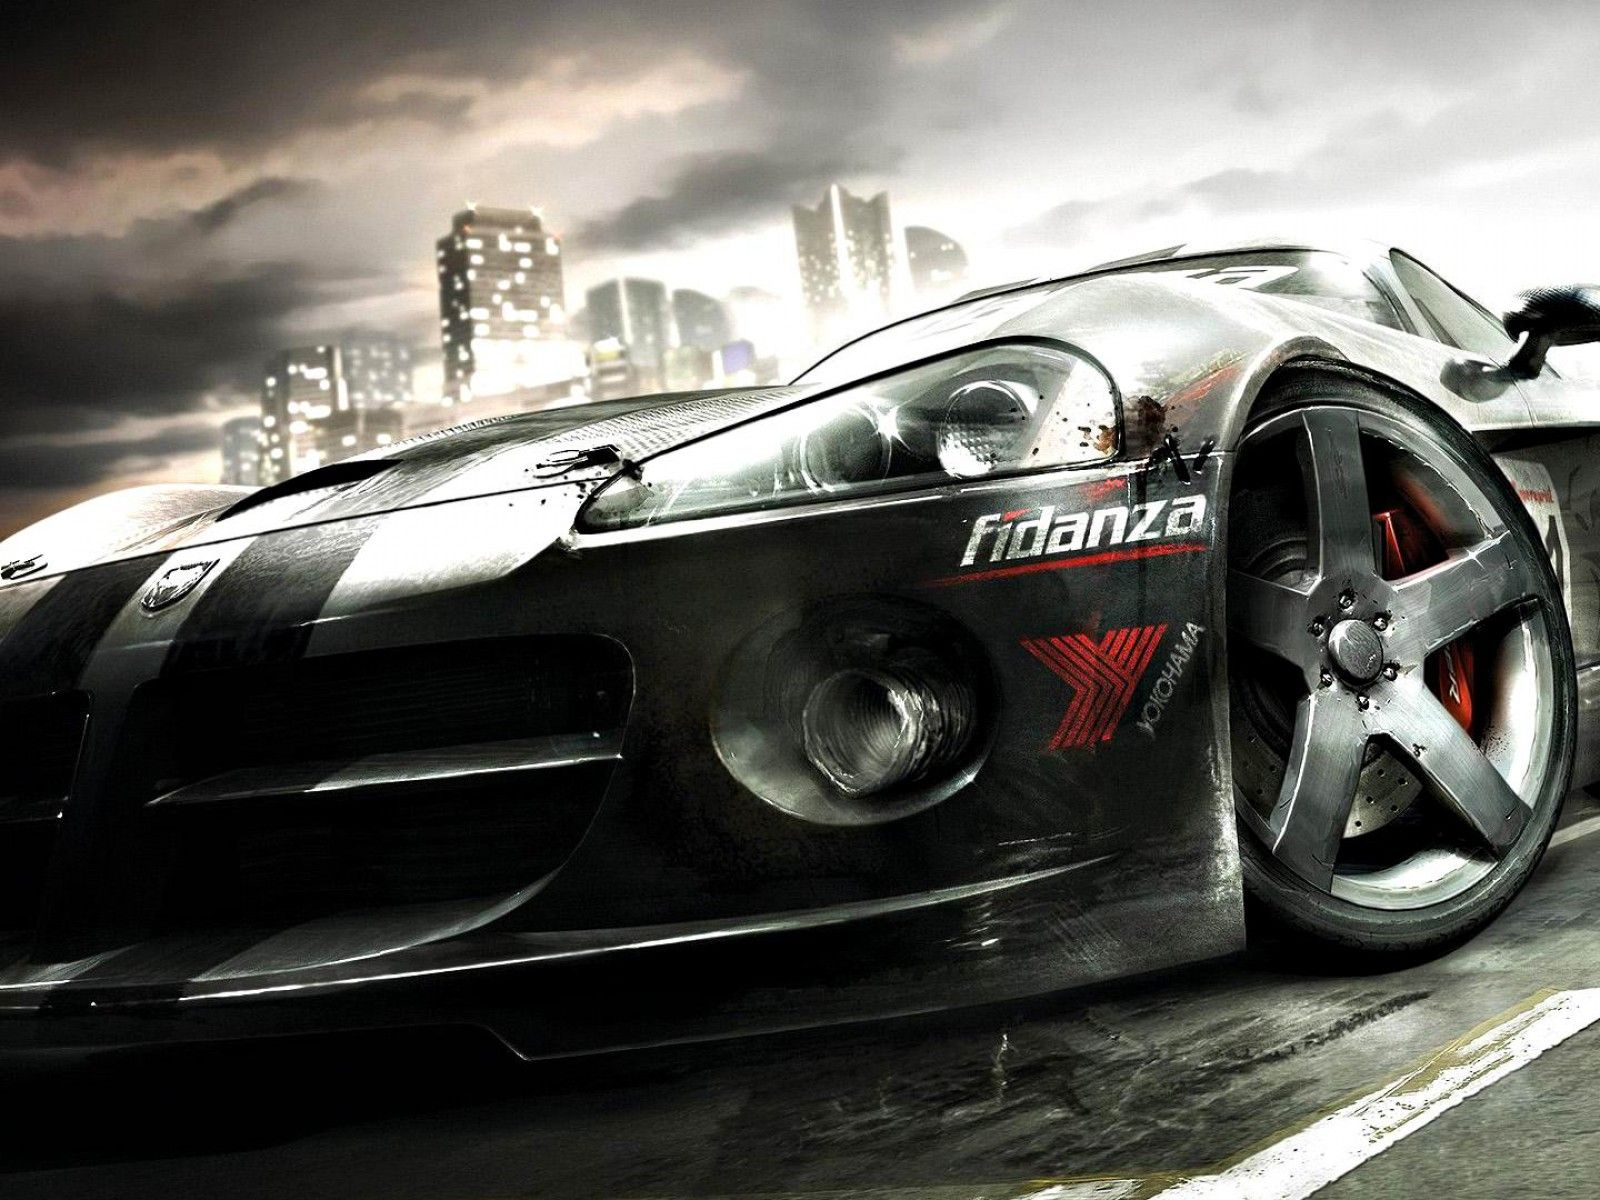 Ordinaire Sports Car Hd Wallpaper Sports Car Images New Wallpapers